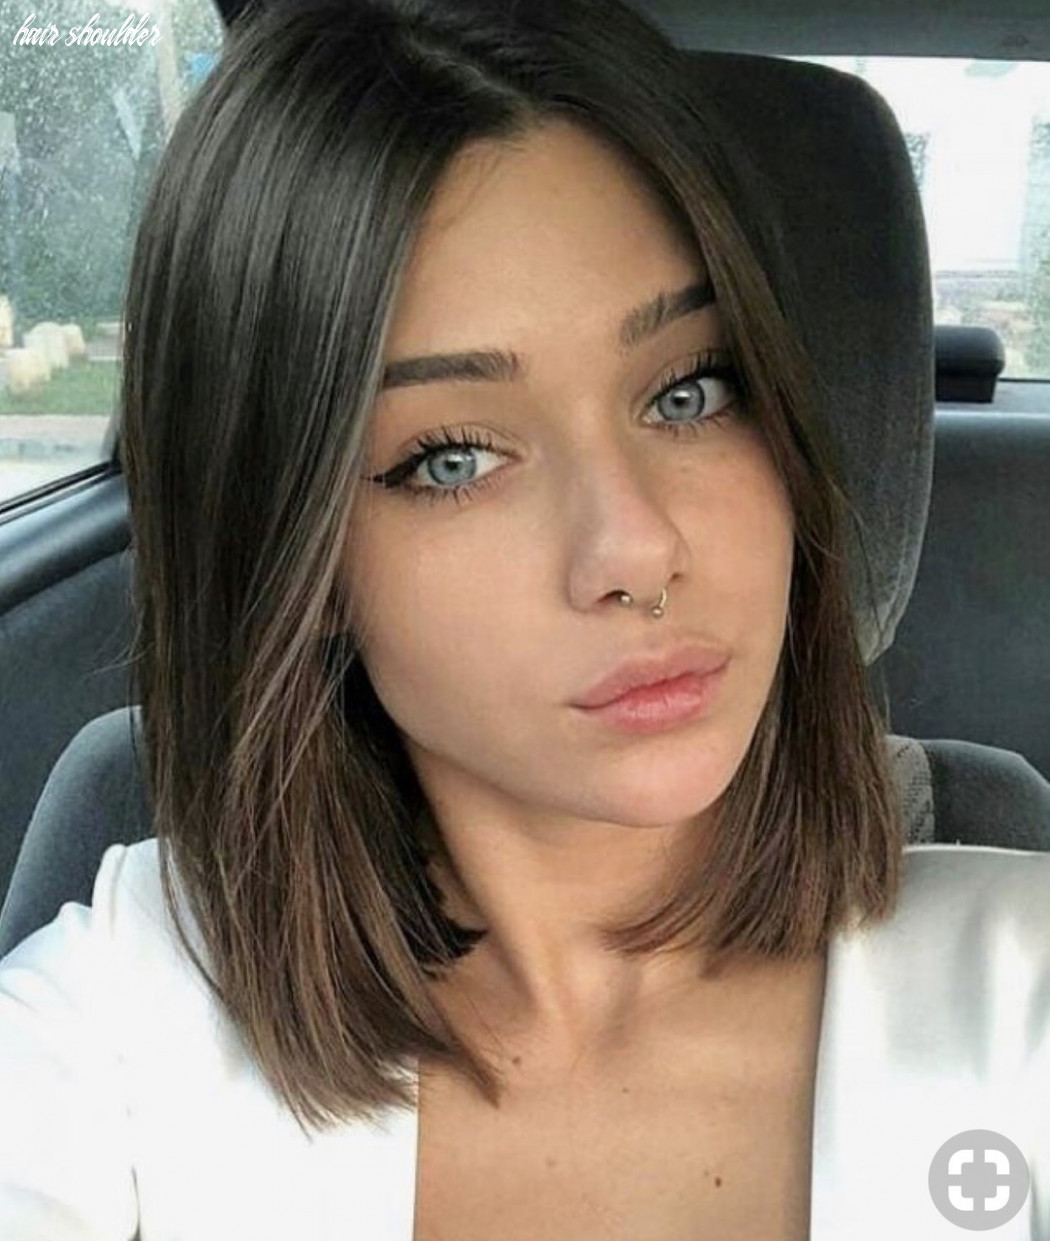 Shoulder length, short hair, haircut and short image #10 on